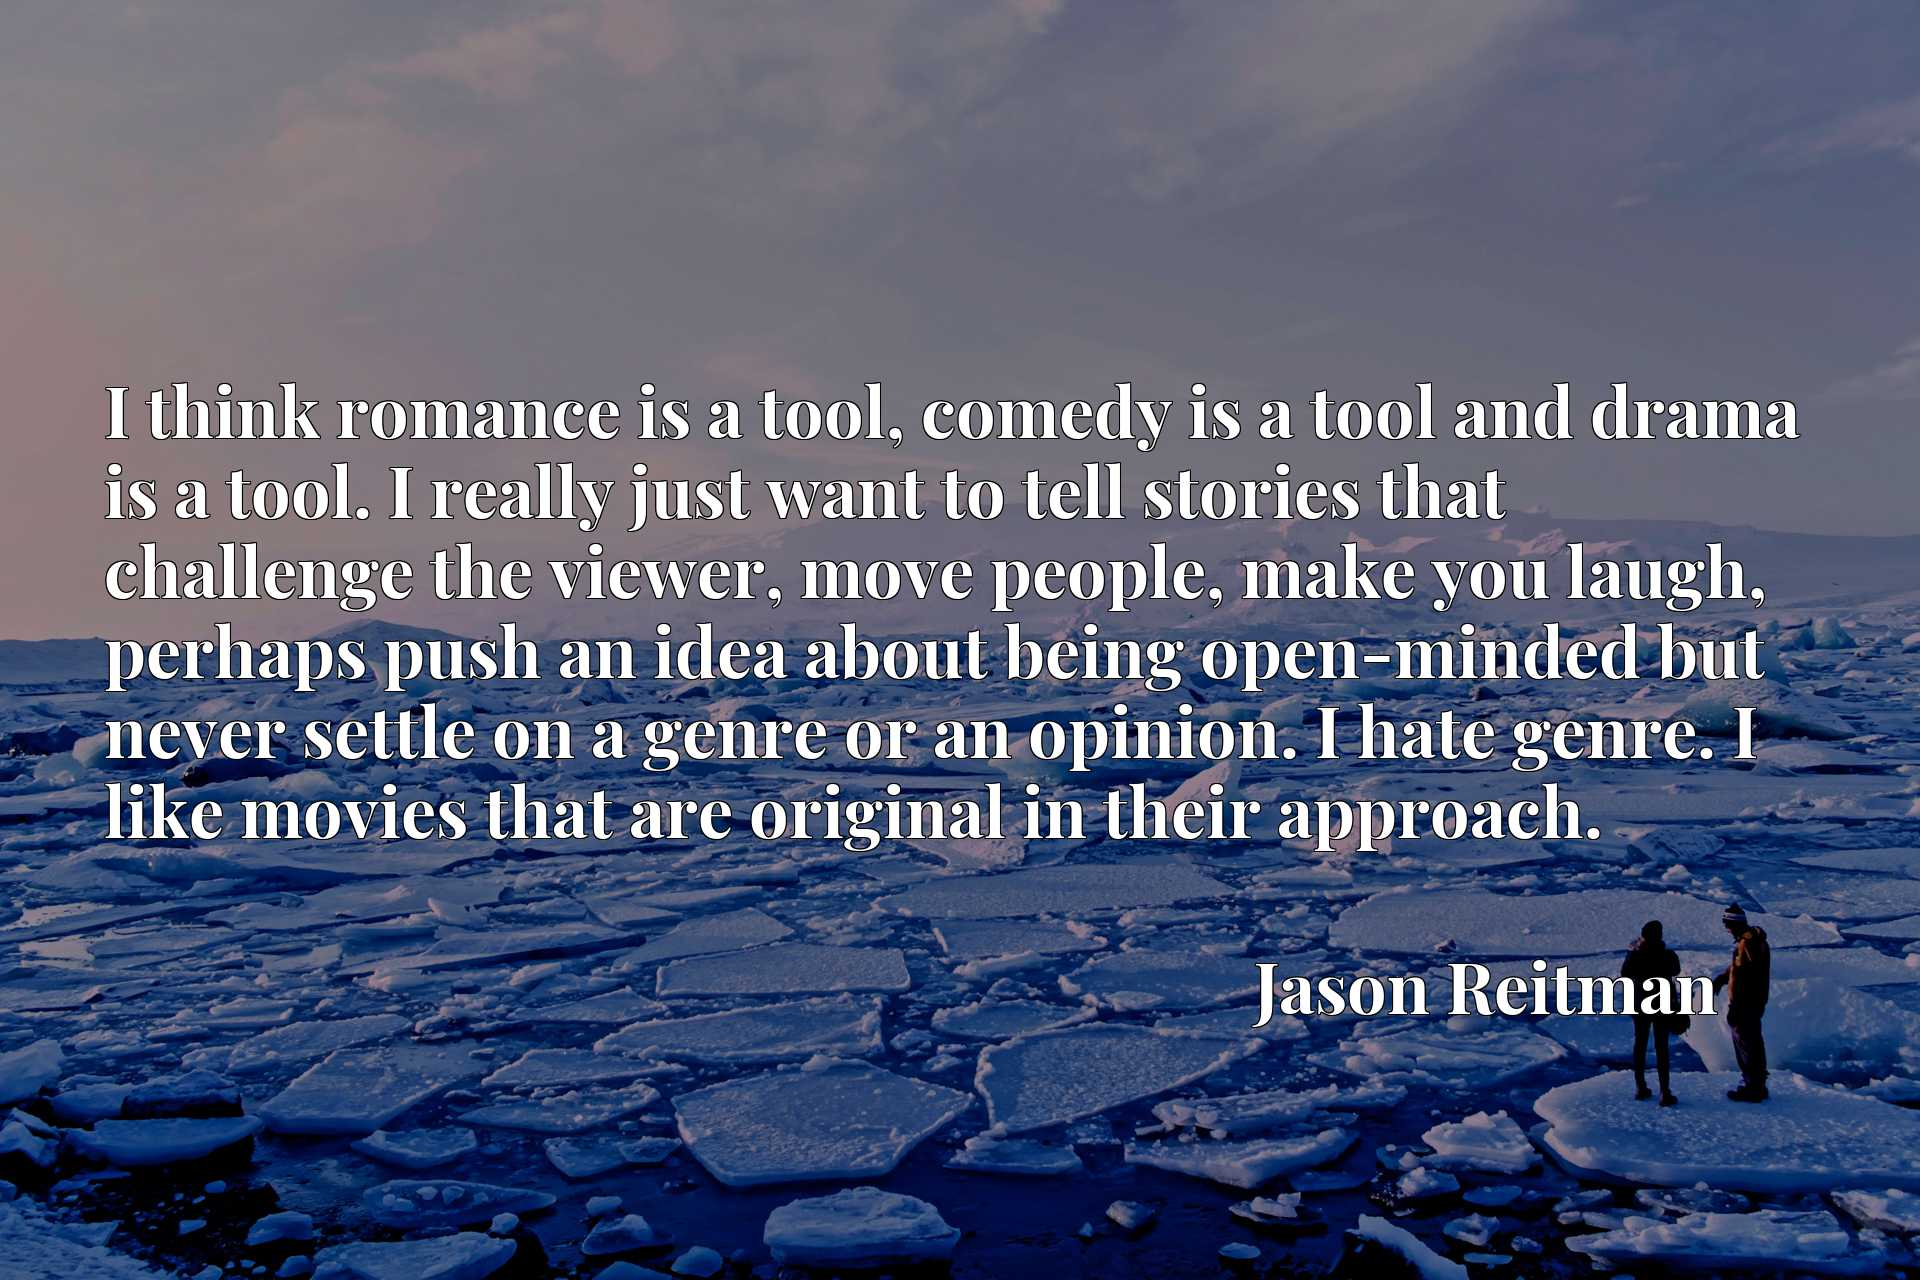 I think romance is a tool, comedy is a tool and drama is a tool. I really just want to tell stories that challenge the viewer, move people, make you laugh, perhaps push an idea about being open-minded but never settle on a genre or an opinion. I hate genre. I like movies that are original in their approach.